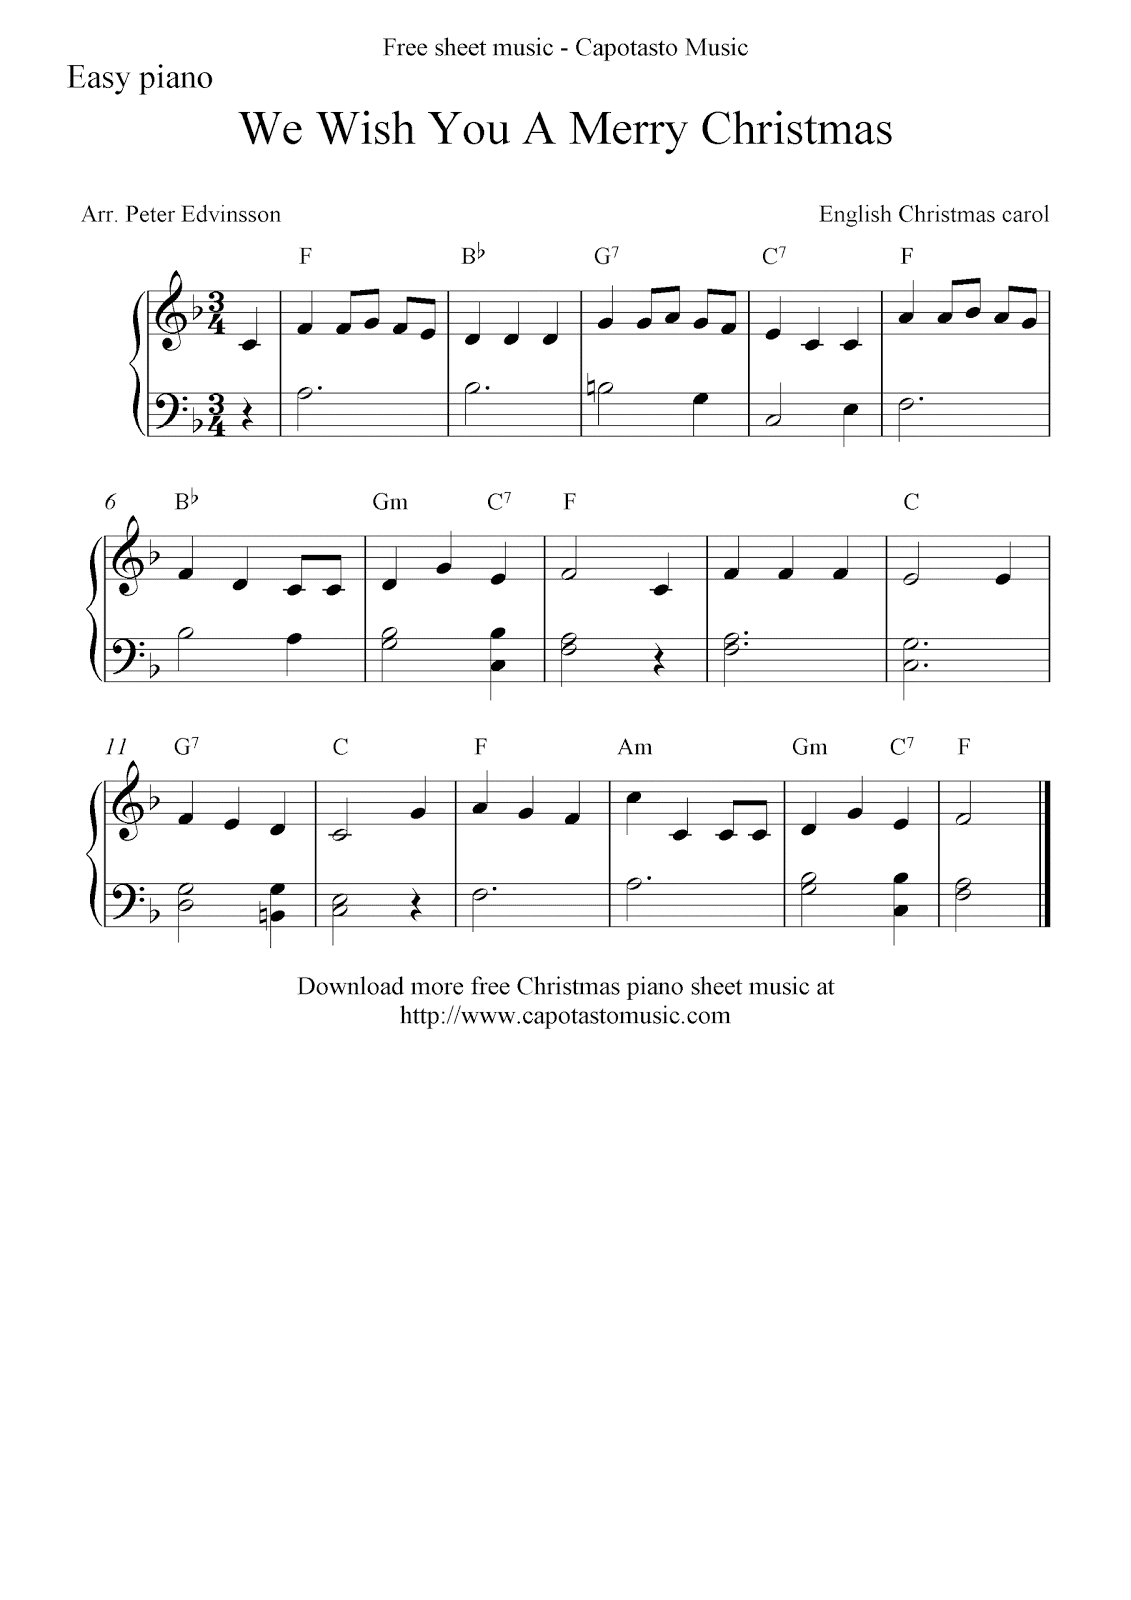 ... Christmas sheet music for easy piano, We Wish You A Merry Christmas